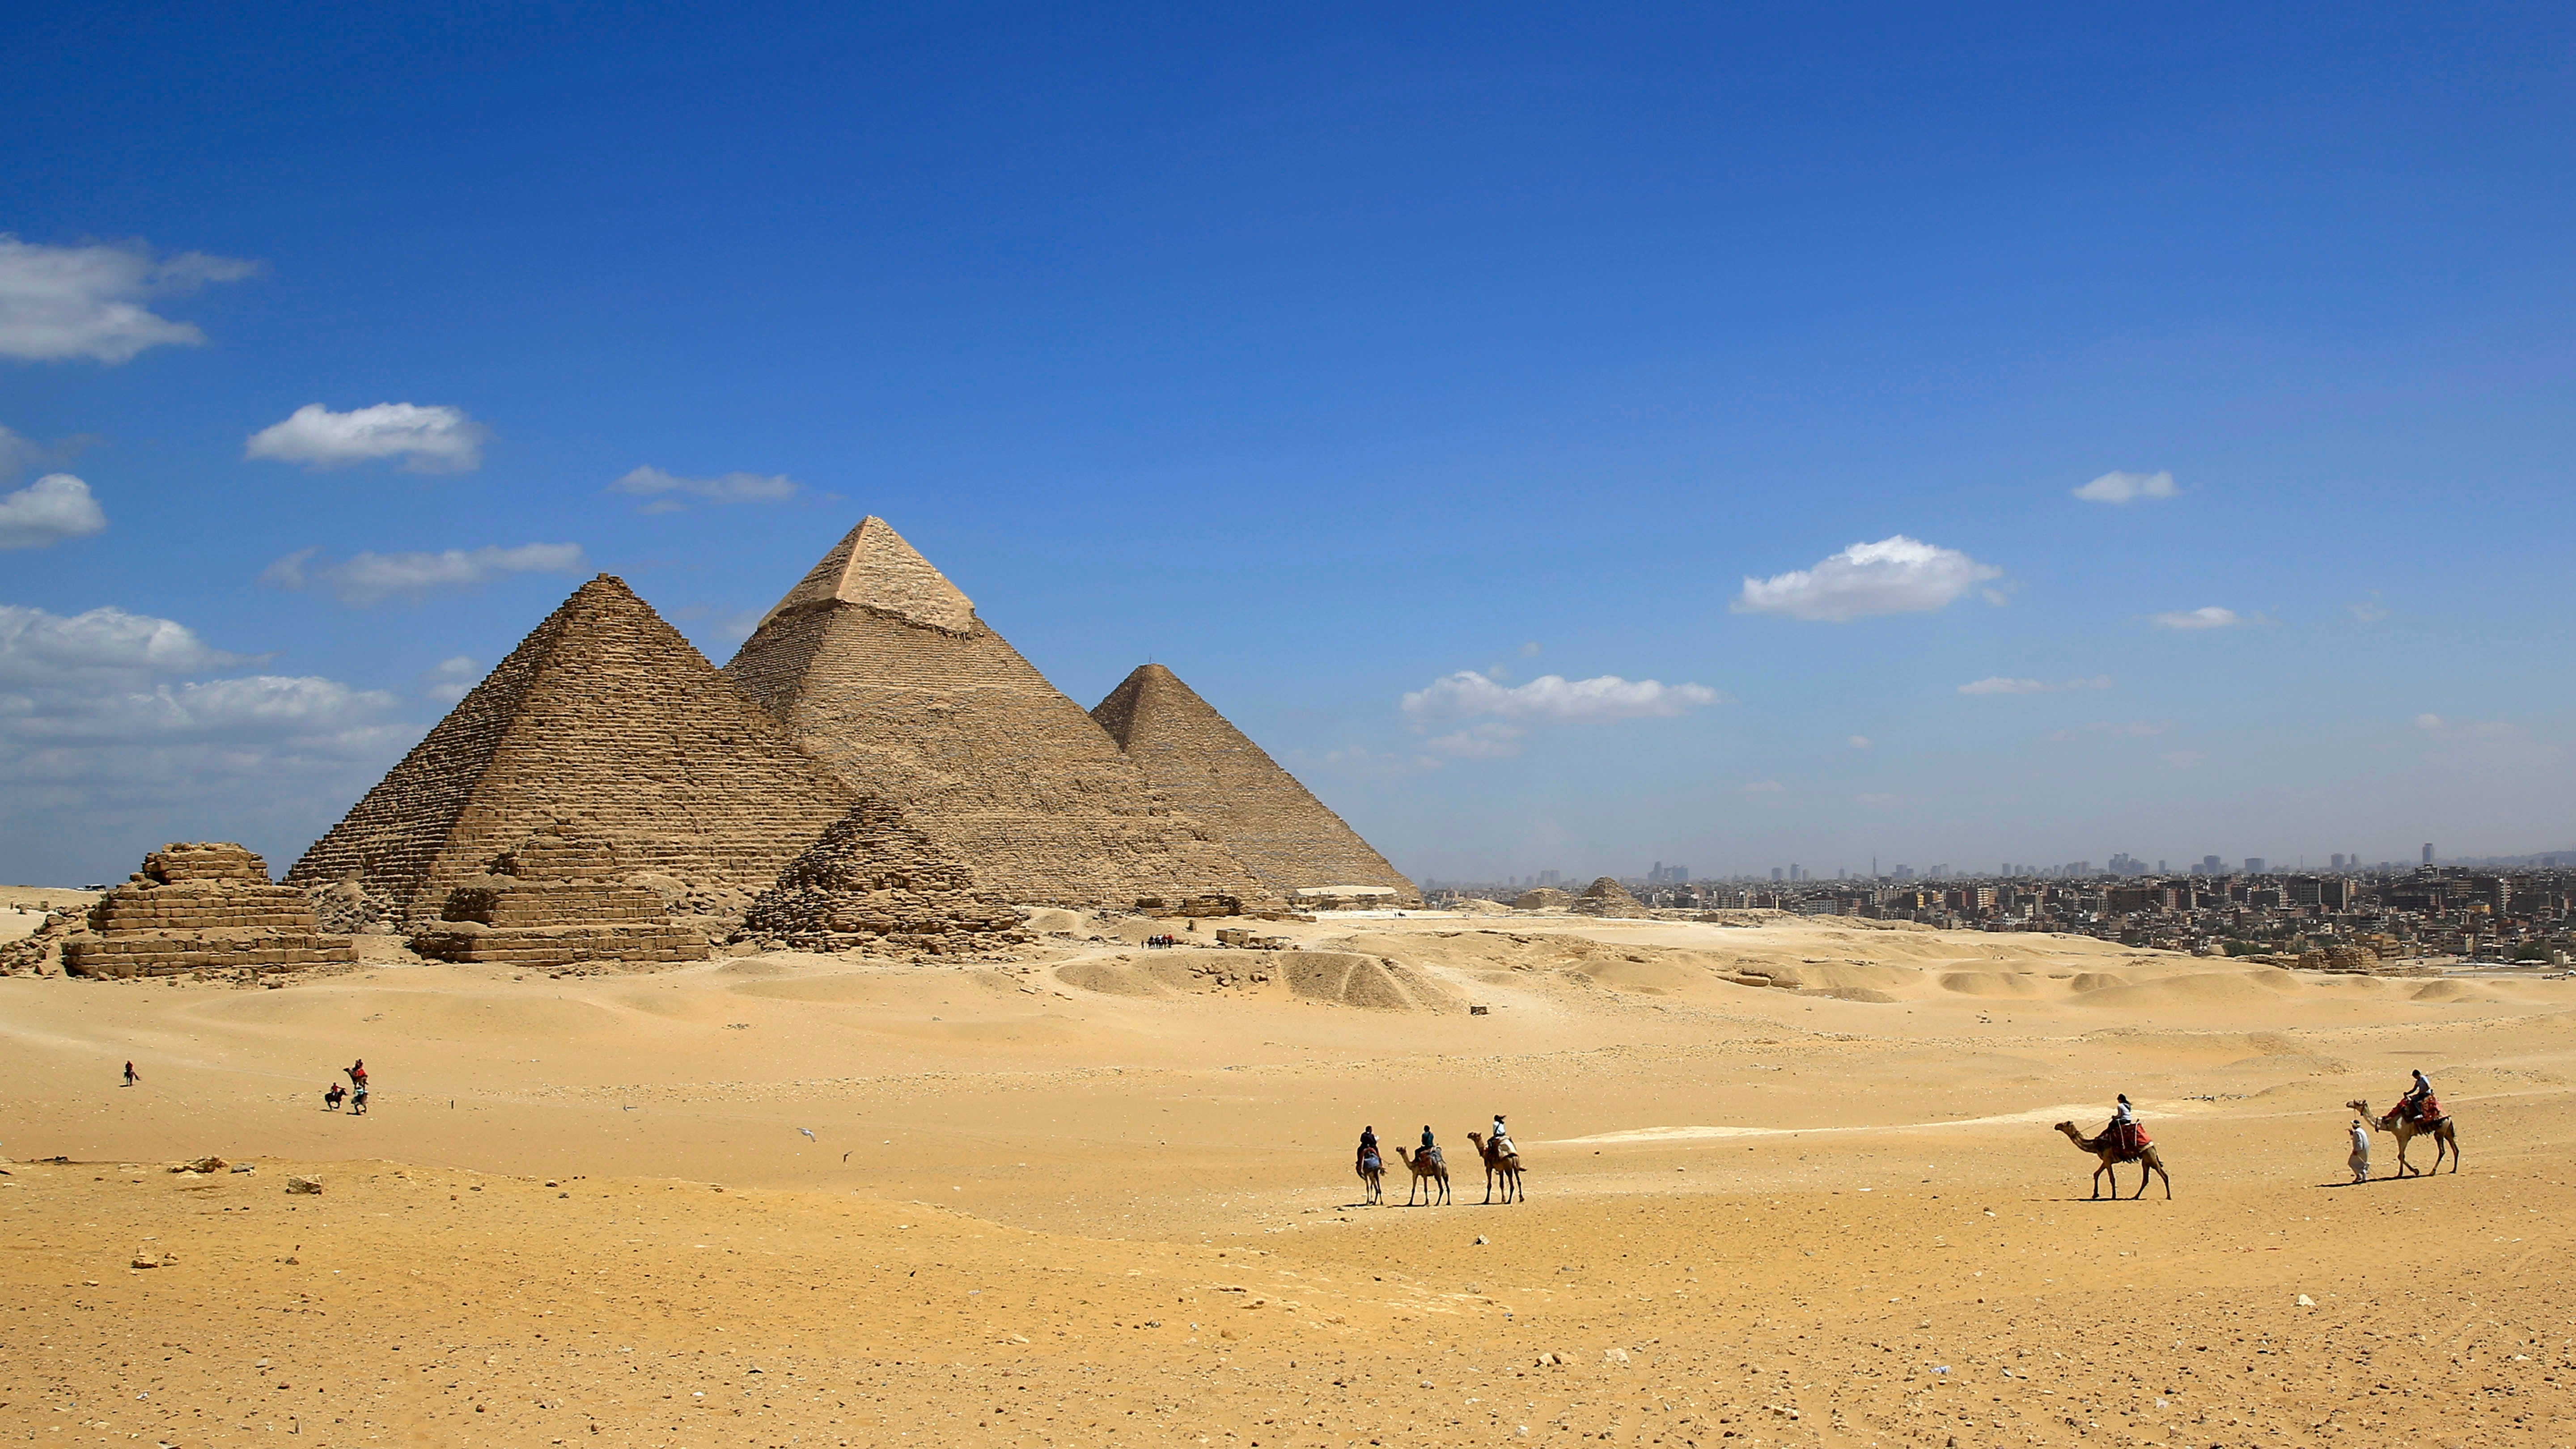 Egyptian Officials Are Pissed About An Alleged Nude Photoshoot On The Great Pyramid